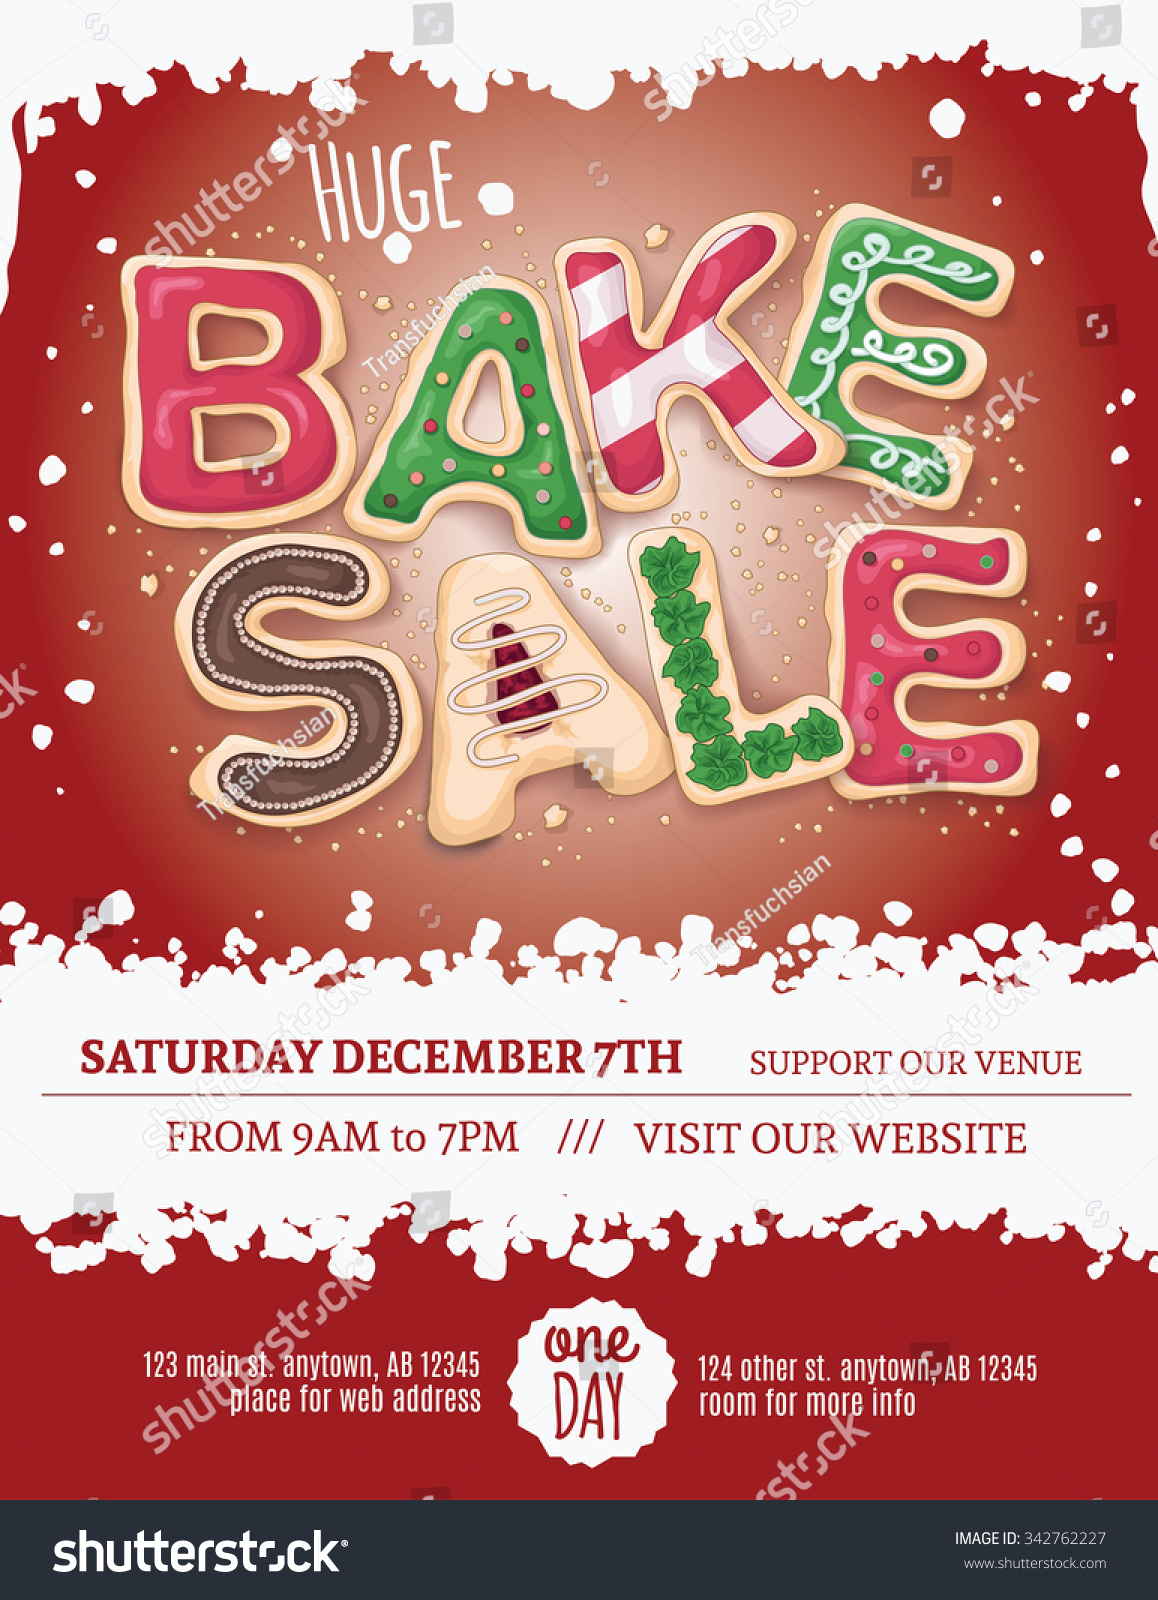 christmas bake flyer template hand stock vector  christmas bake flyer template hand drawn cookie letters on a red background